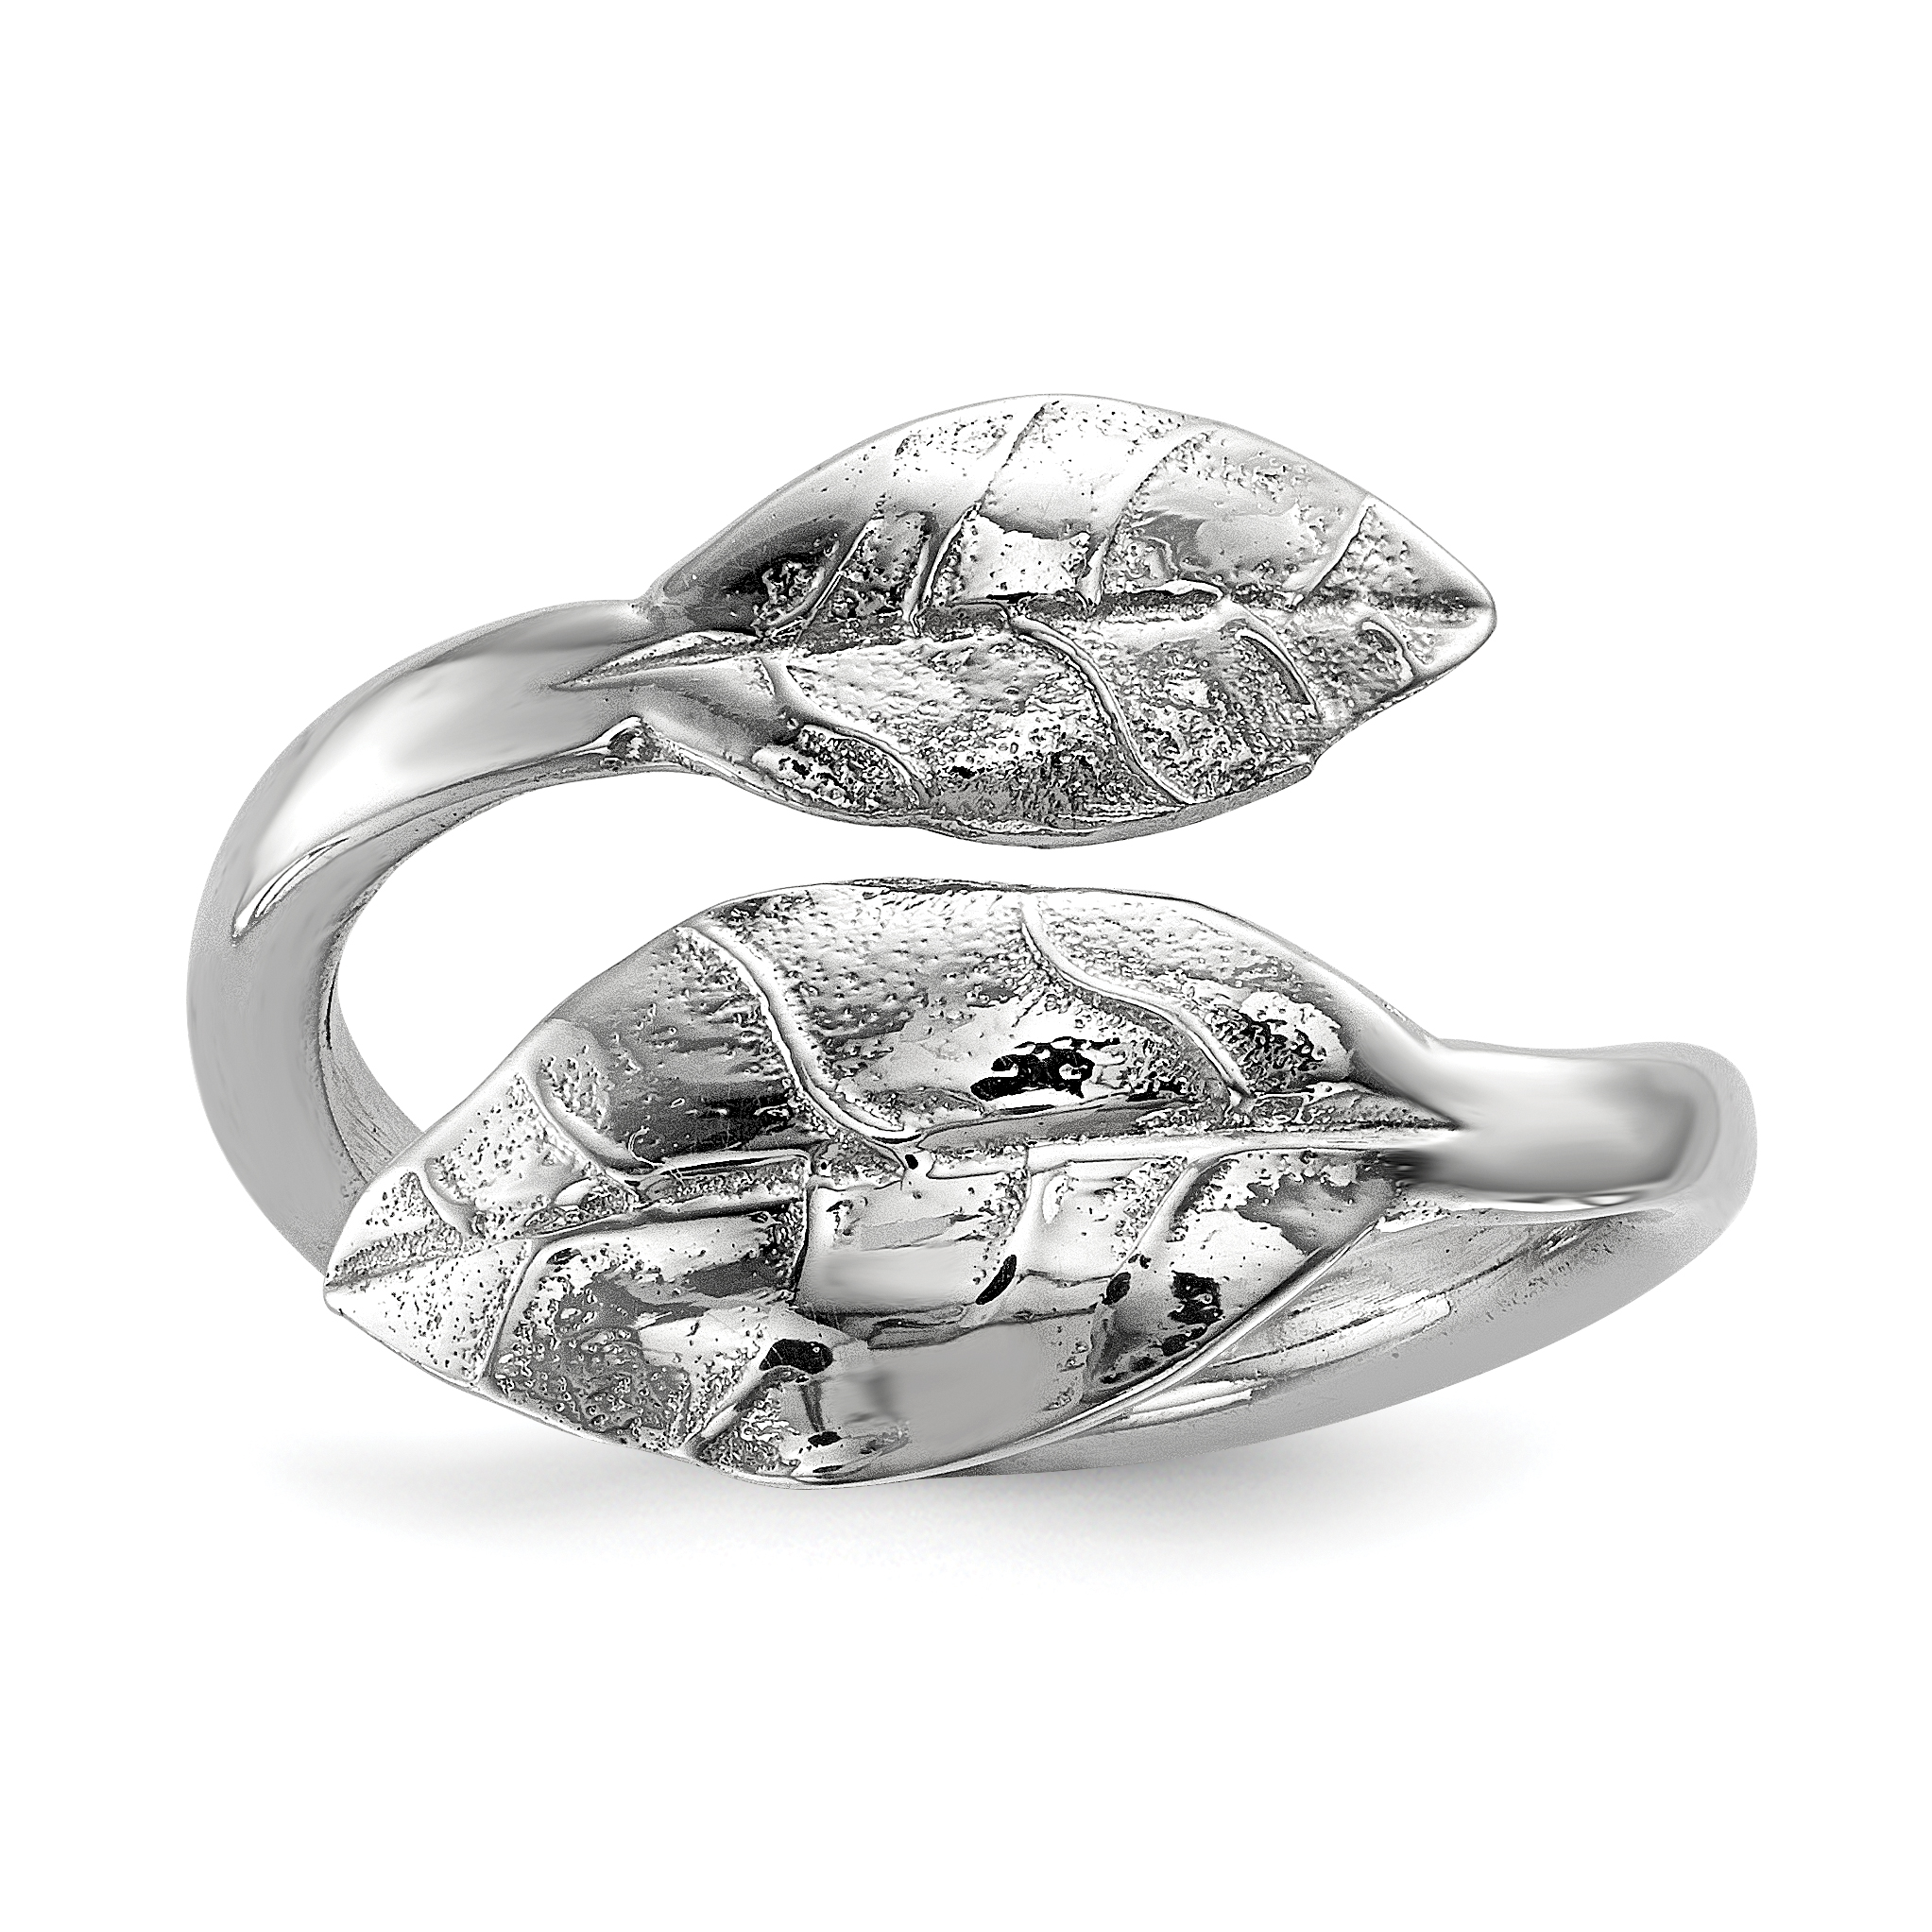 925 Sterling Silver Leaf Band Ring Size 8.00 Flowers/leaf Fine Jewelry Gifts For Women For Her - image 2 de 2